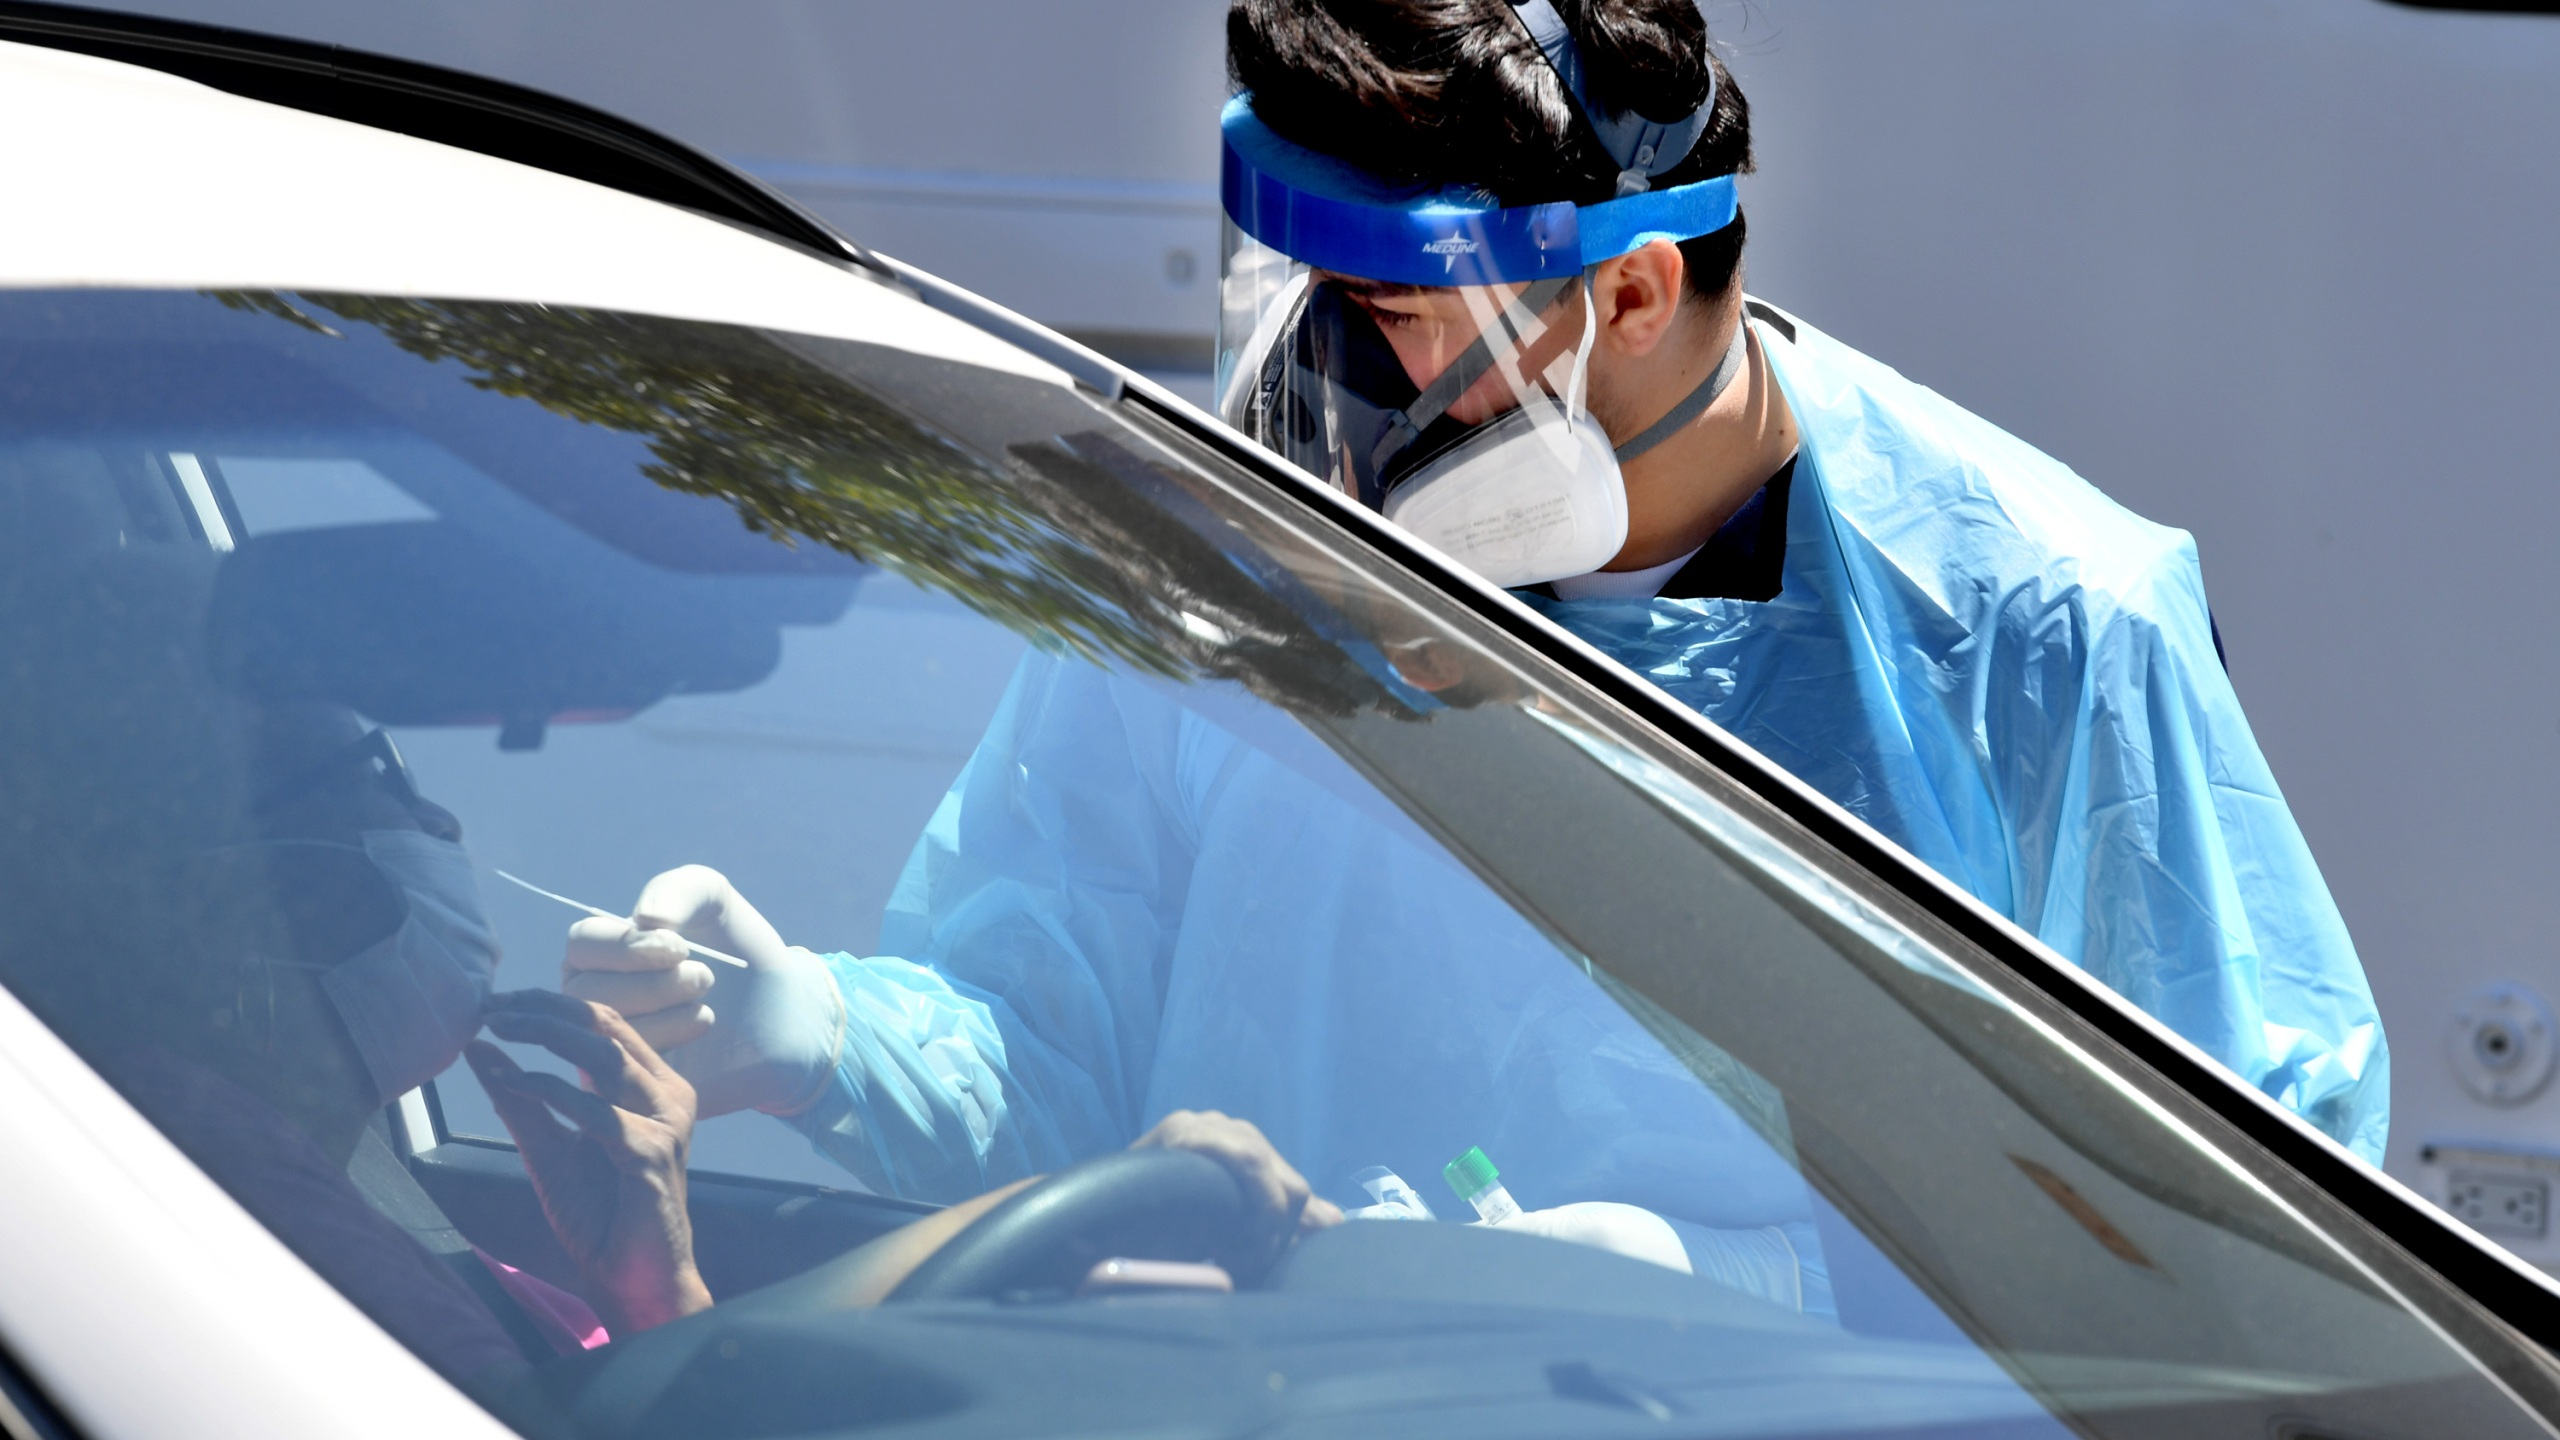 Workers wearing personal protective equipment (PPE) perform drive-up COVID-19 testing administered from a car at Mend Urgent Care testing site for the novel coronavirus at the Westfield Culver City on April 24, 2020 in the Culver City neighborhood of Los Angeles, California. (Kevin Winter/Getty Images)